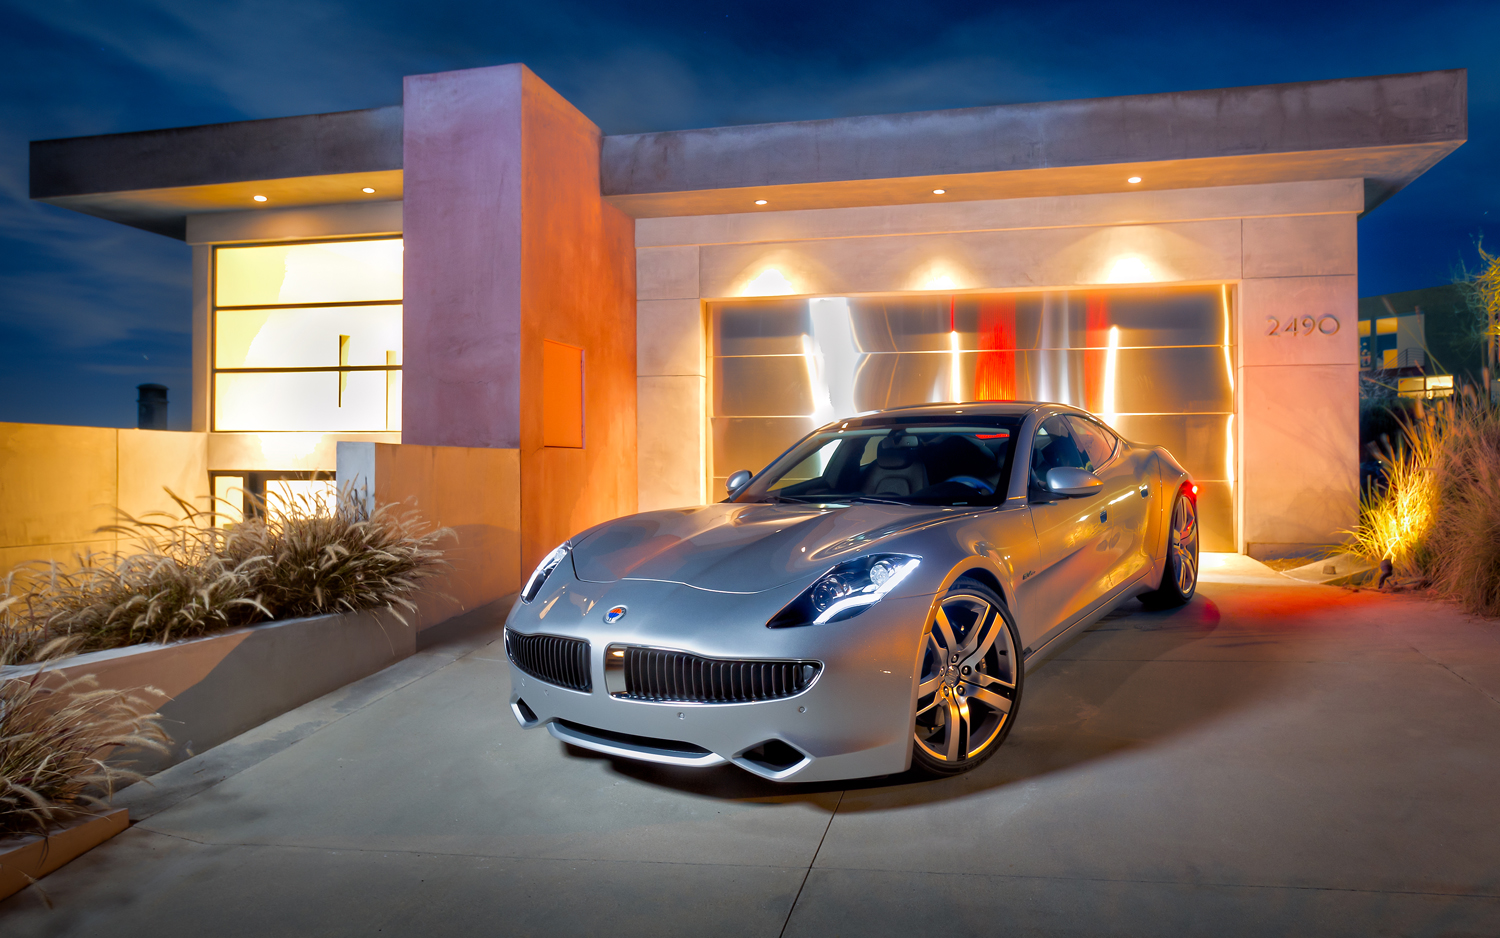 China Auto Parts Giant Wanxiang Wins Fisker Asset Auction